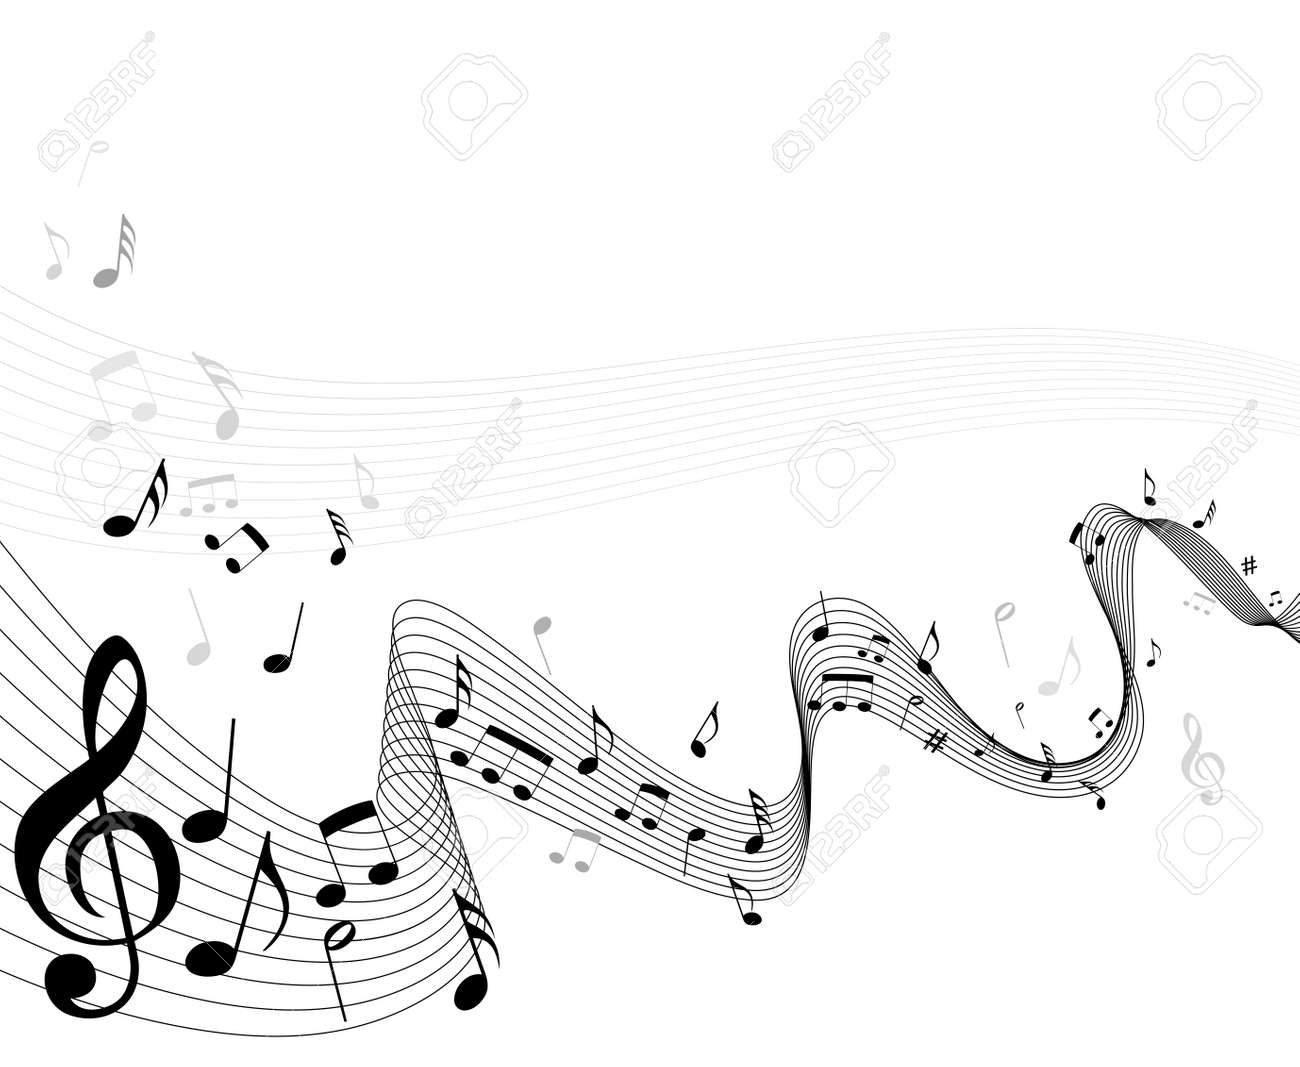 Musical notes staff background on white vector by tassel78 image - Sheet Music Abstract Music Notes Sheet Background